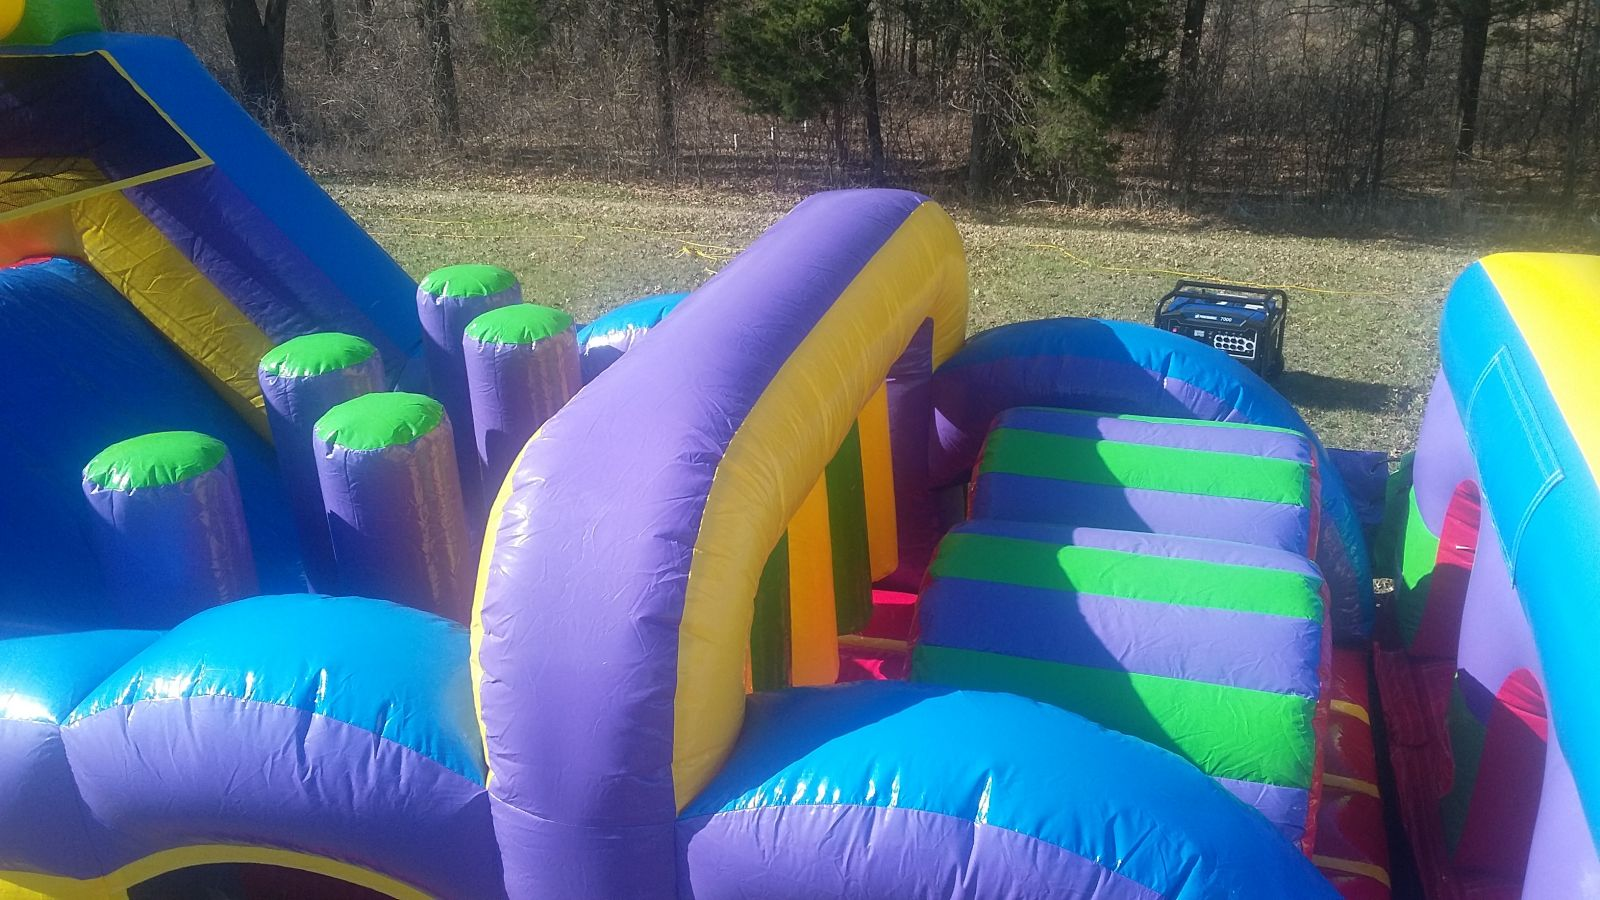 Tunnels, archways, and inflatable popups inside obstacle course bounce house